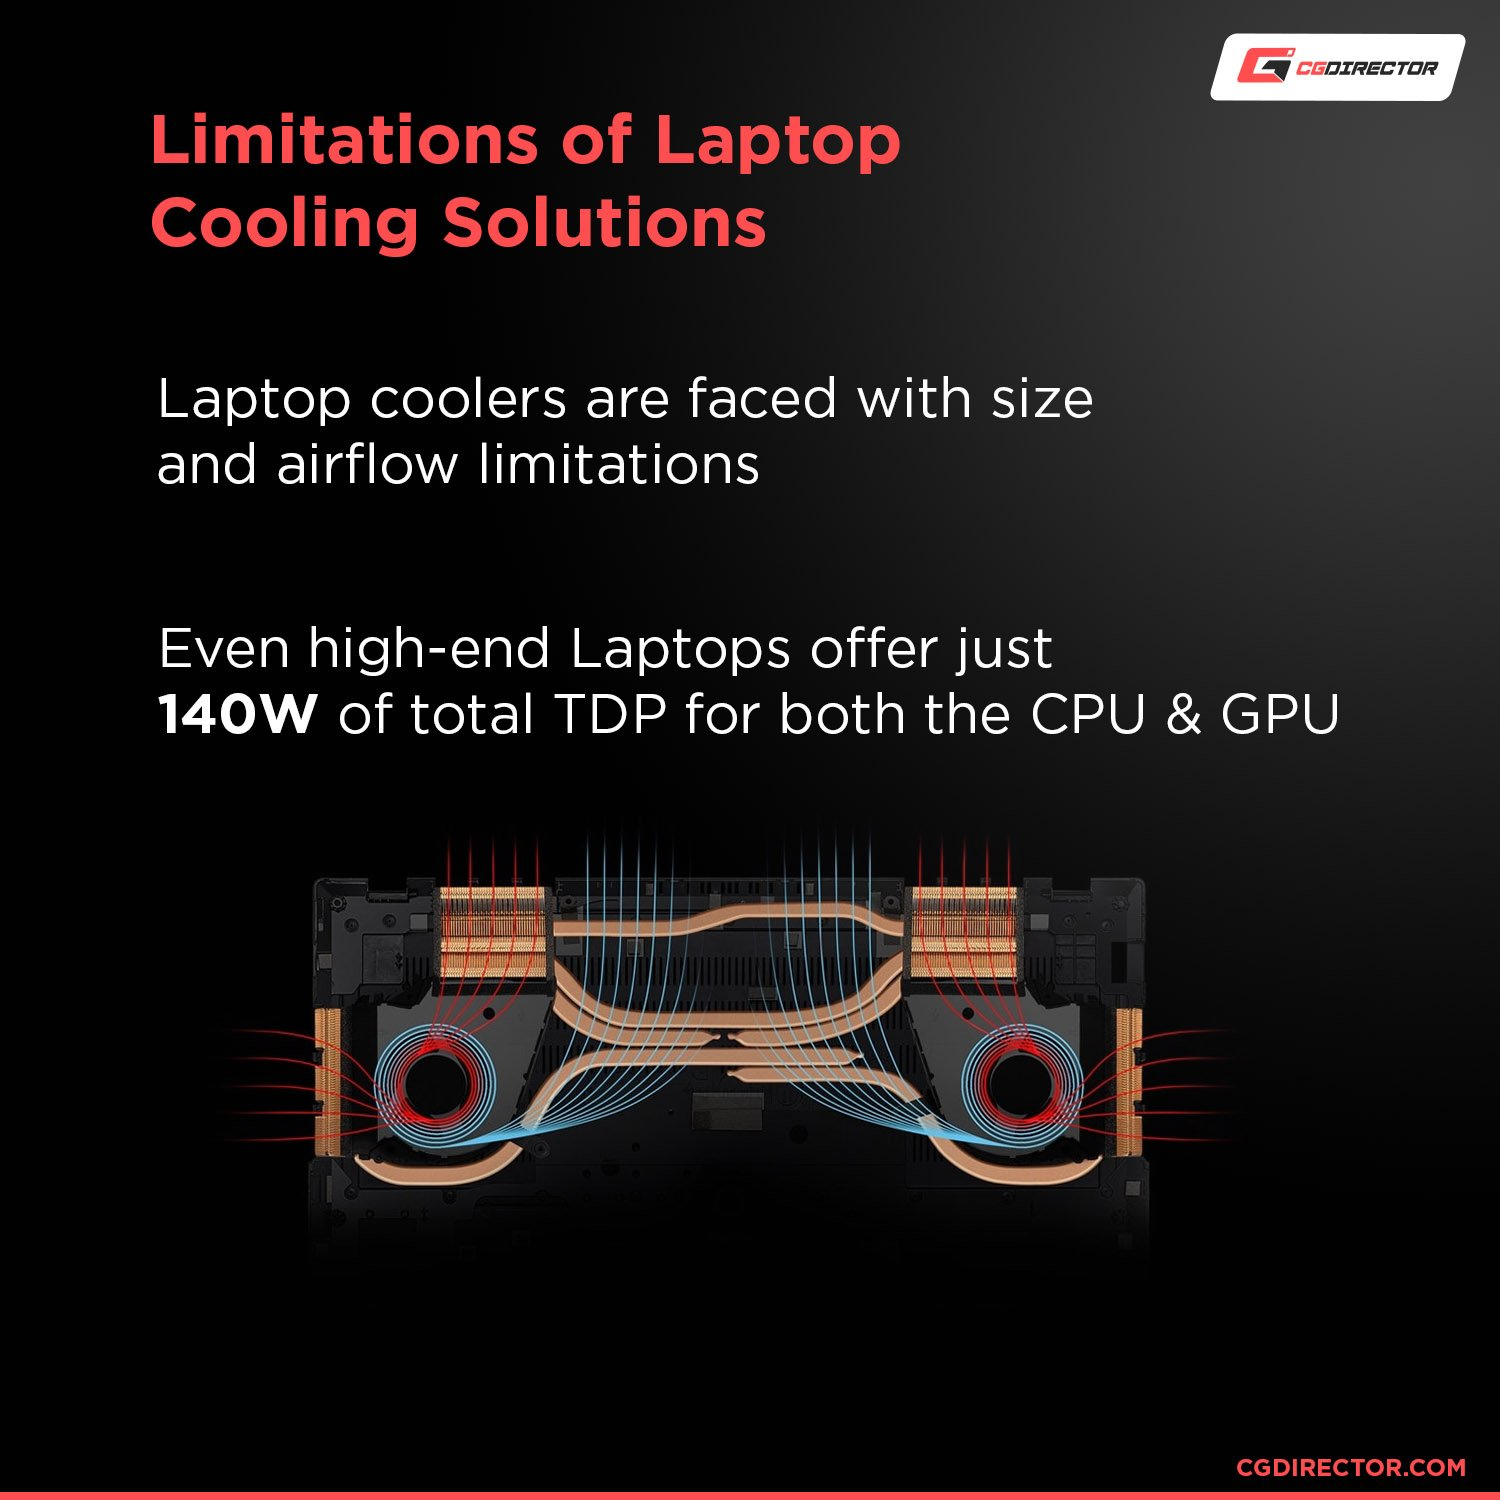 Limitations of Laptop cooling solutions